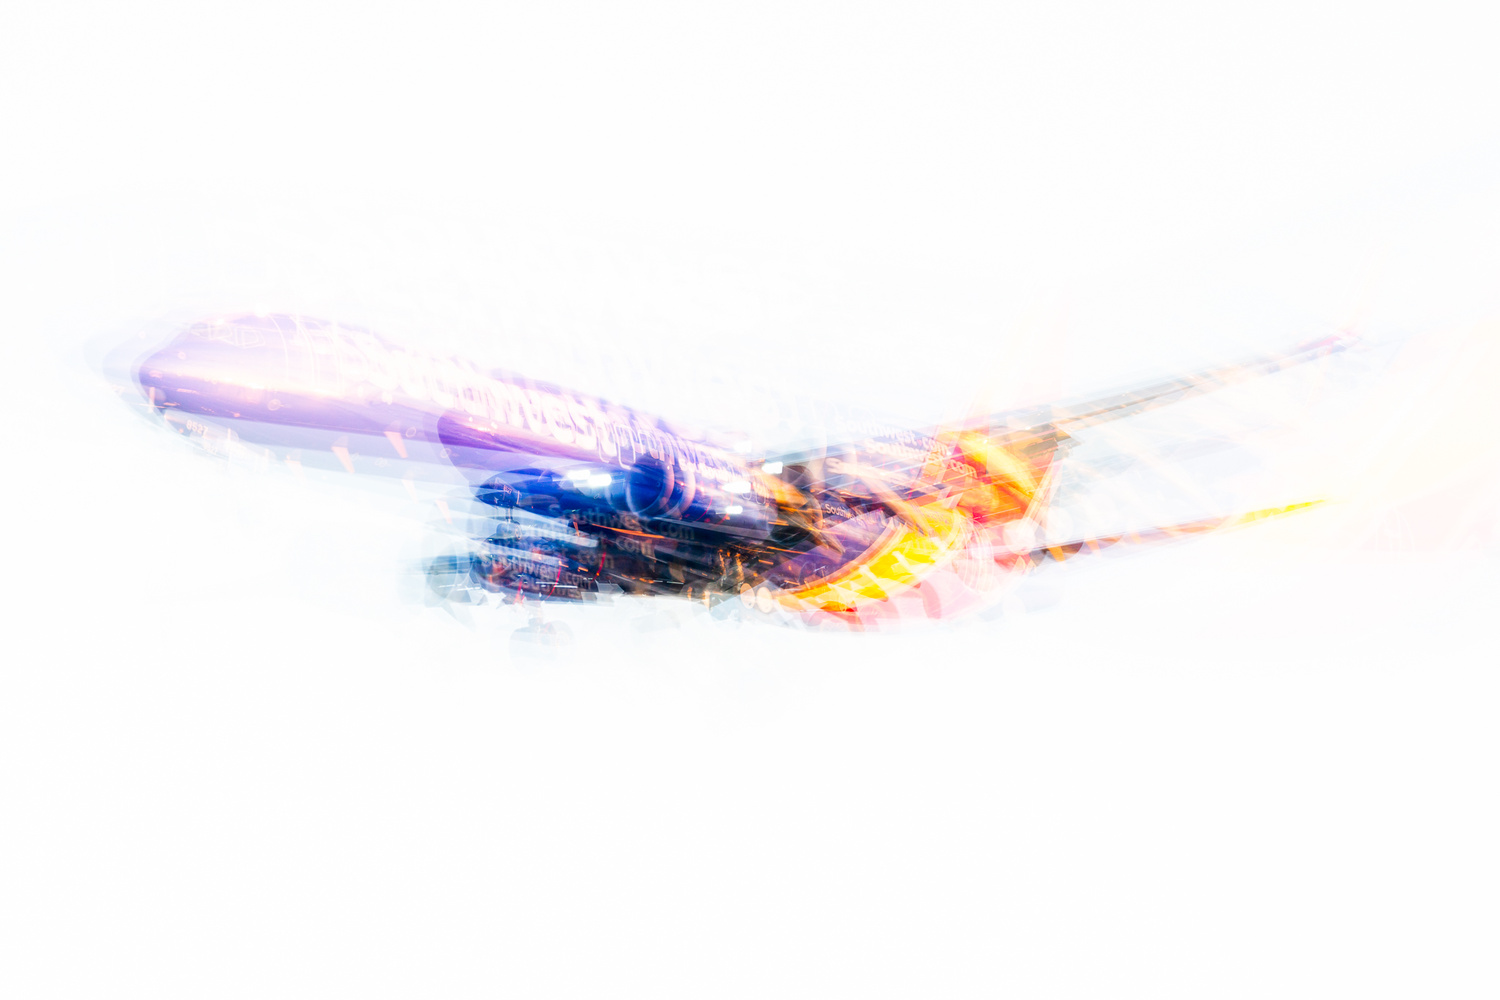 Abstract Jetliner by Michael Oster